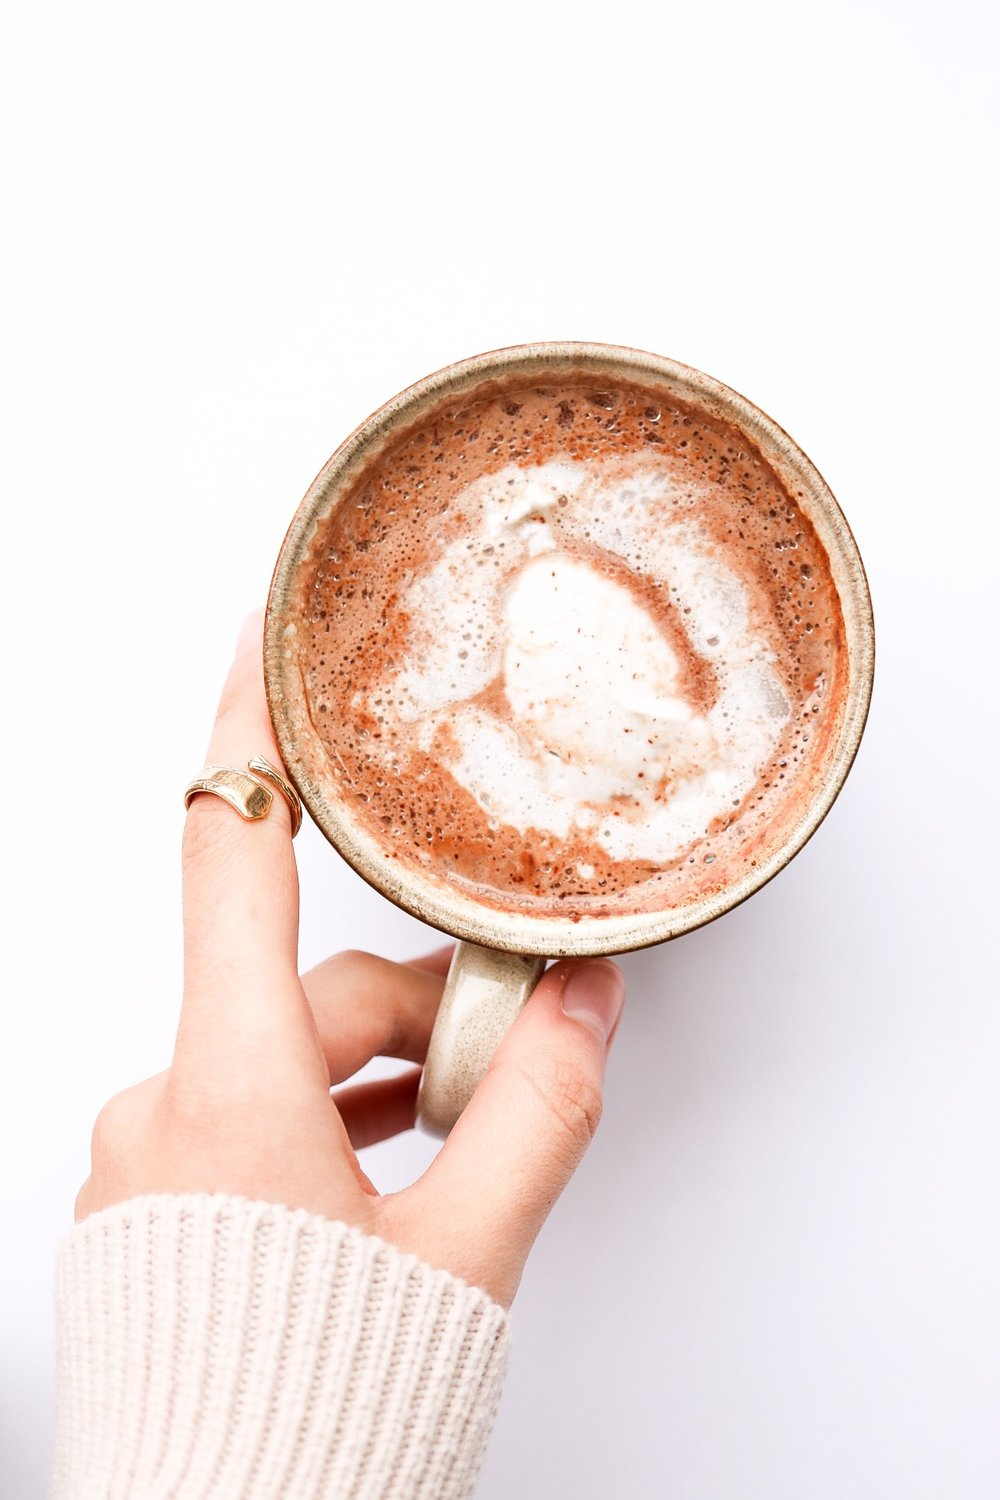 Hot Chocolate - INGREDIENTS:1.5 cups plant milk2 squares Alter Eco chocolate2 Tbsp cacao powder3 Tbsp maple syrupINSTRUCTIONS:Add all of the ingredients into a saucepan, and allow it to come to a simmer - cook until the chocolate has melted and everything is combine.